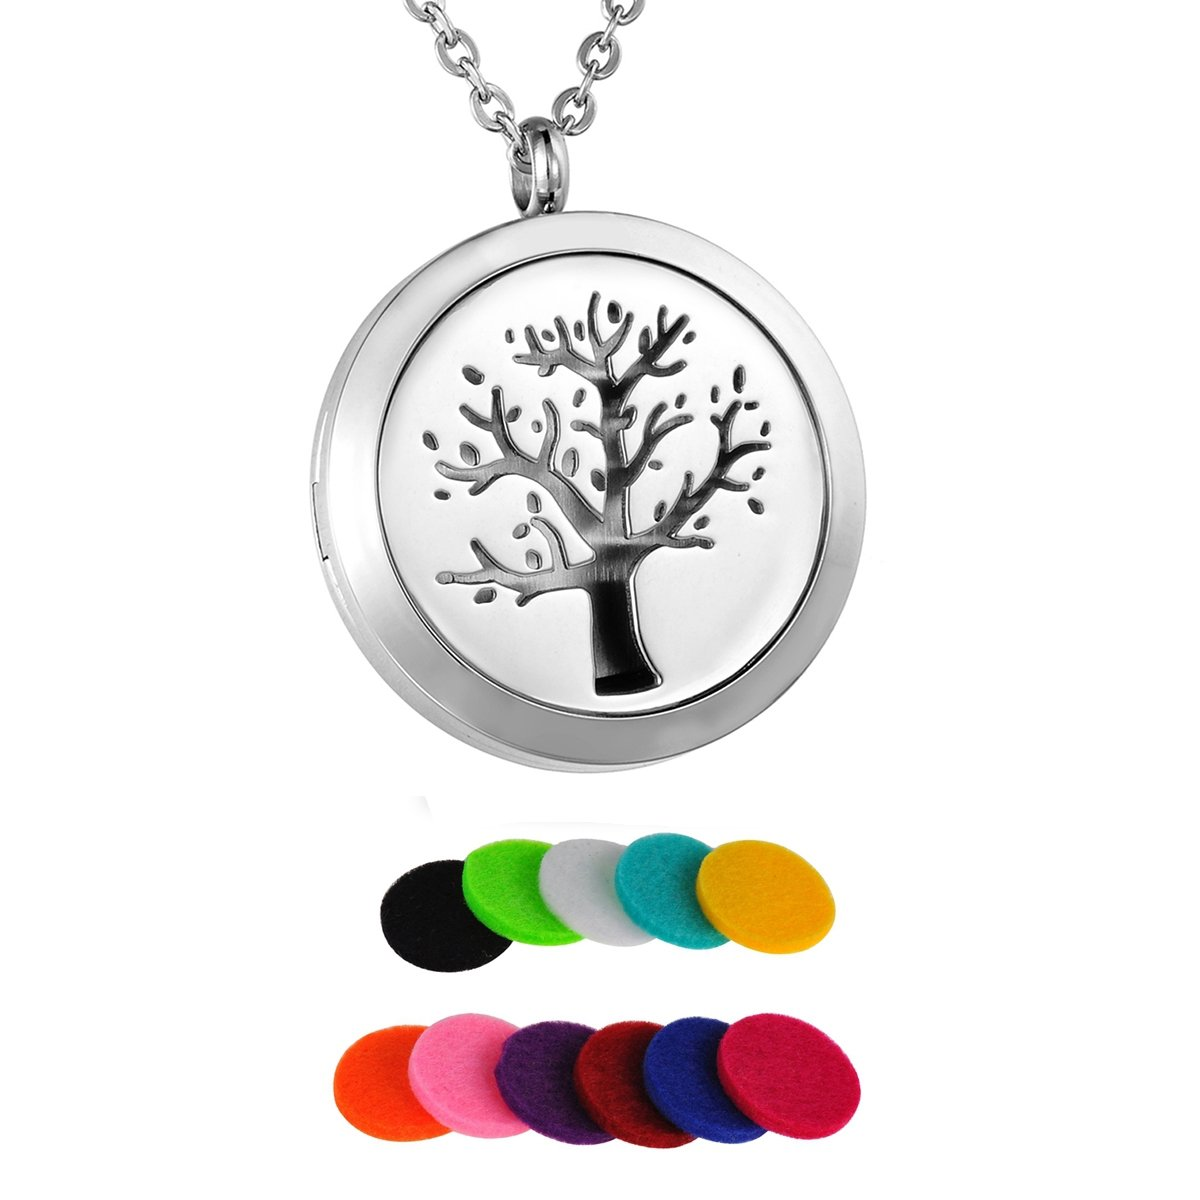 HooAMI Tree of Life Aromatherapy Essential Oil Diffuser Necklace Locket Pendant 11 Felt Pads TY EGBETY102415